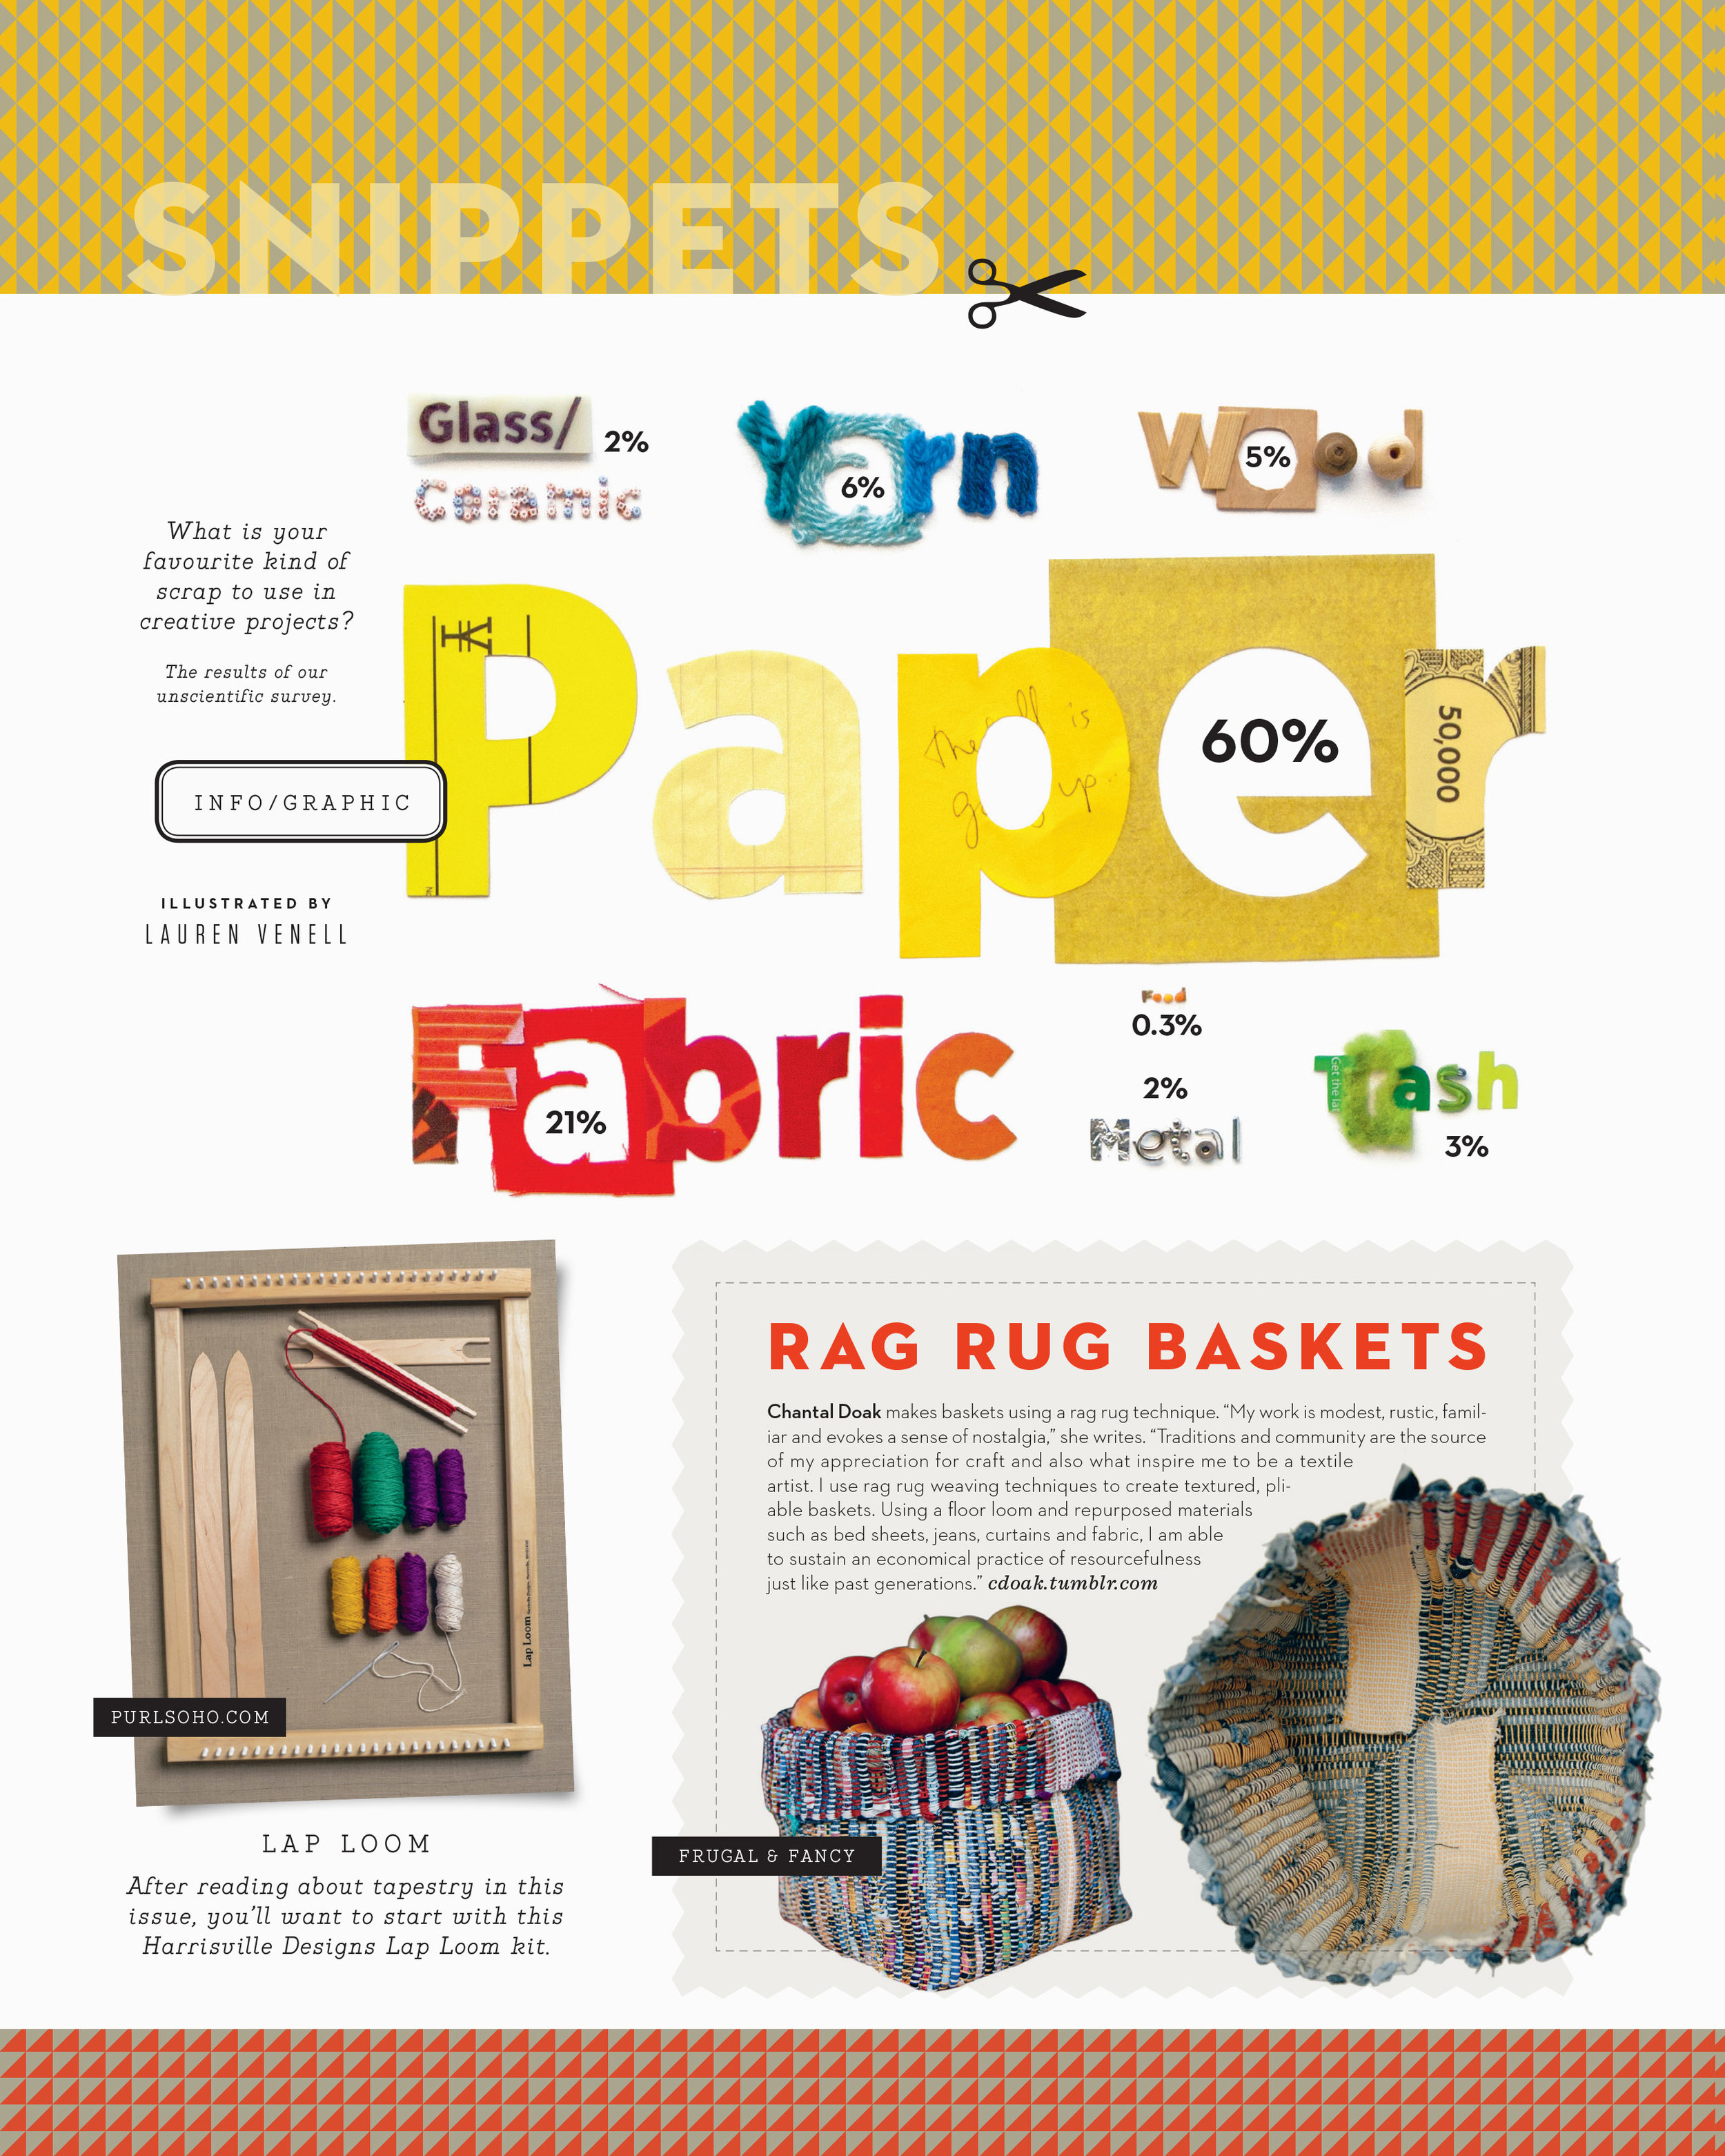 Scrap Materials infographic - Paper, cotton fabric, wood, yarn, glass, glass beads, coated steel wire, aluminum, acetate, rice, sprinkles, spices. Published in Uppercase magazine, Spring 2015 issue.